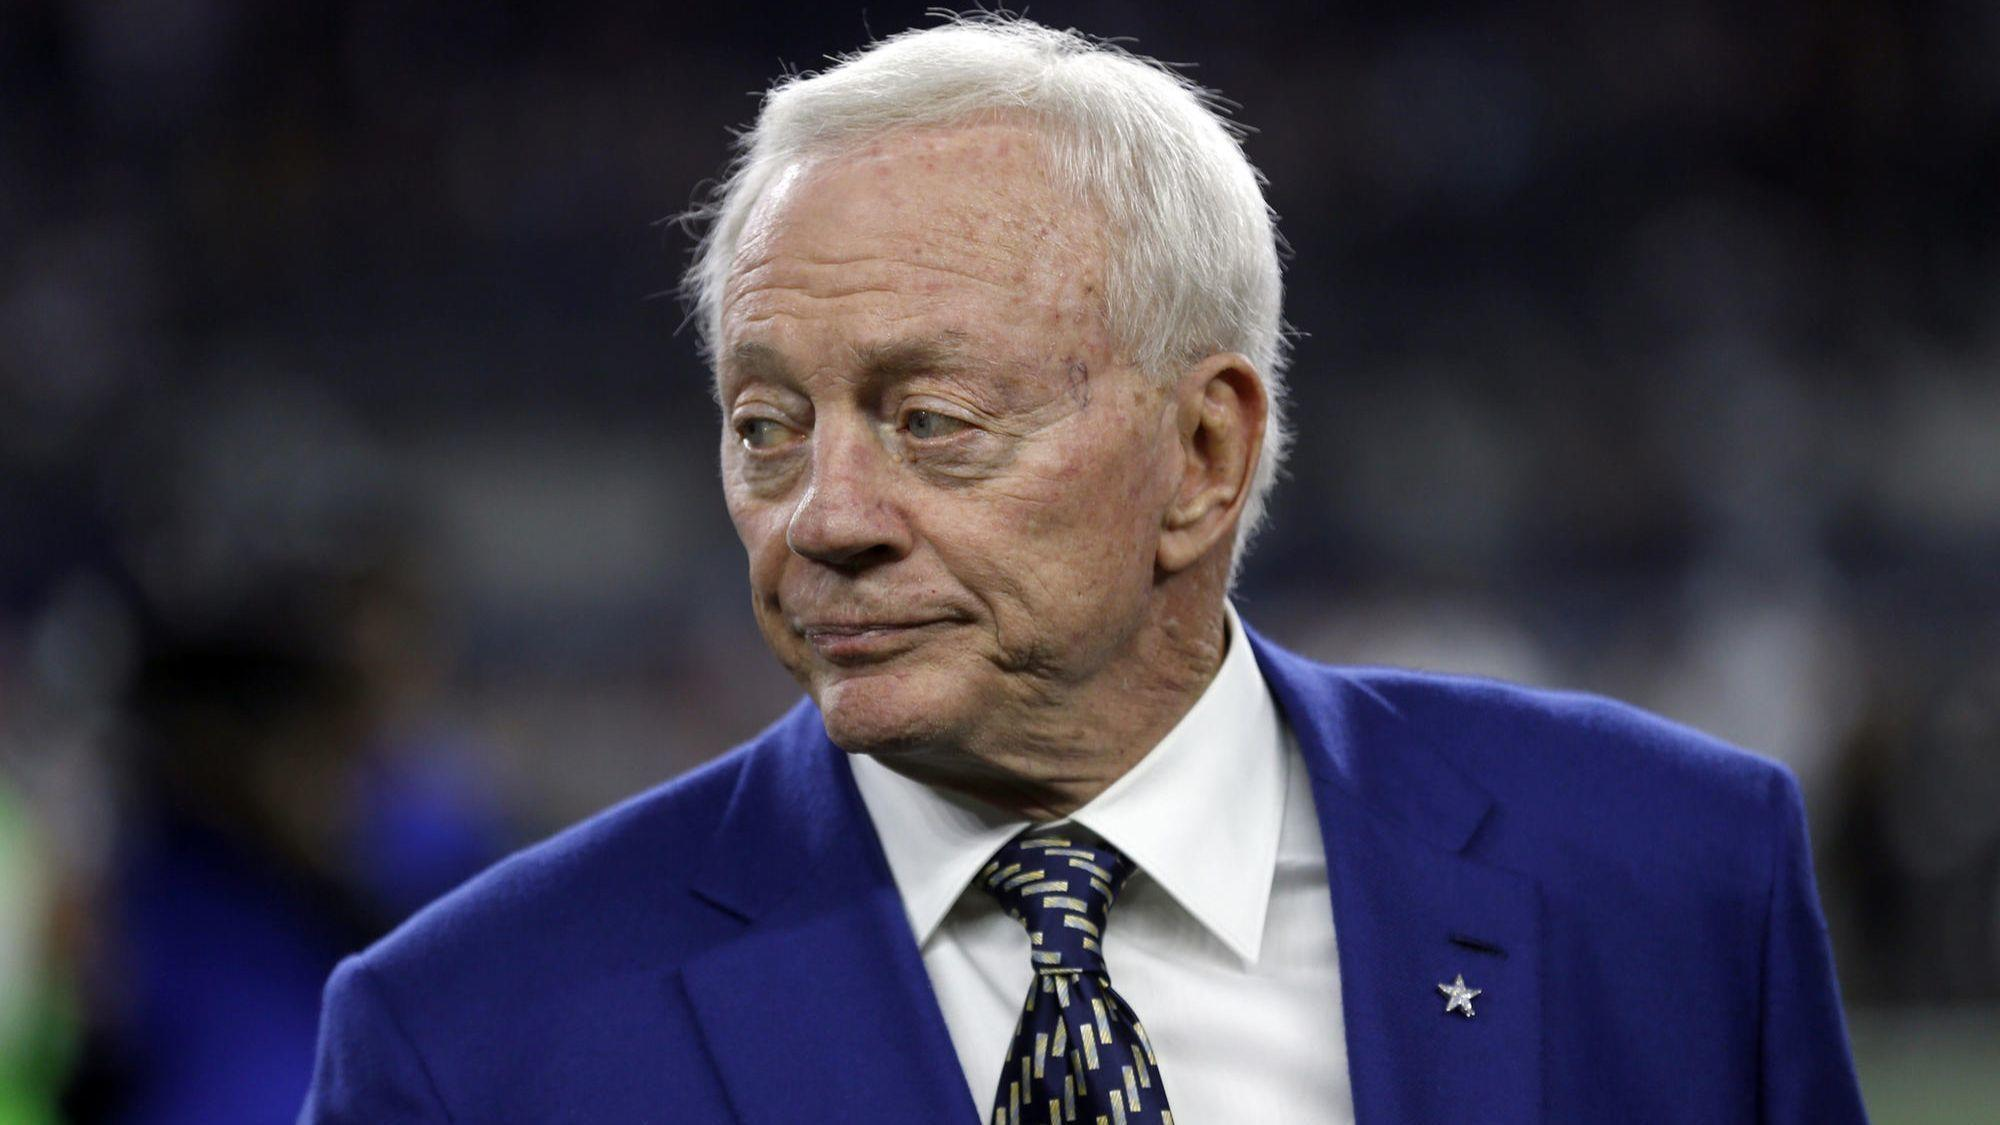 Jerry Jones says his players won't have the option of remaining in the locker room during the anthem